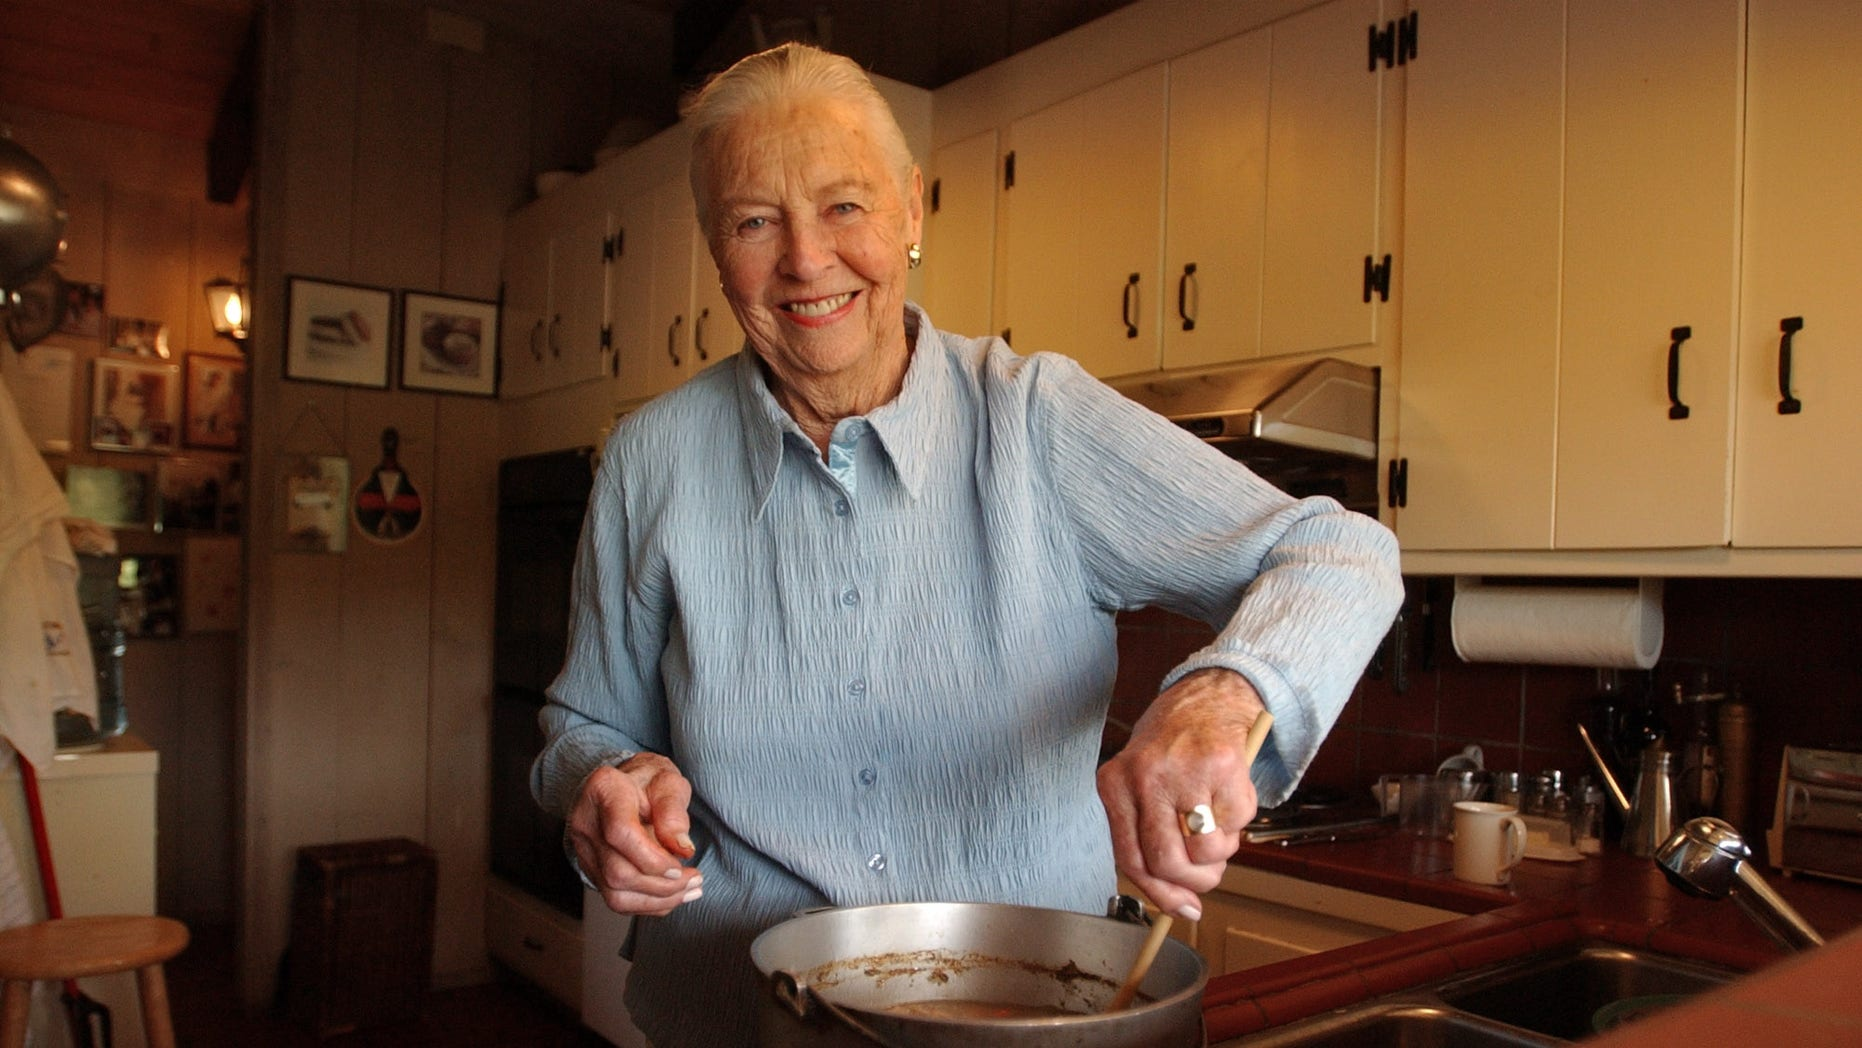 May 27, 2004: Marion Cunningham, a venerated figure in the food world, at home in Walnut Creek, Calif.  Cunningham died of complications from Alzheimer's disease, a family friend told the San Francisco Chronicle. She was 90.